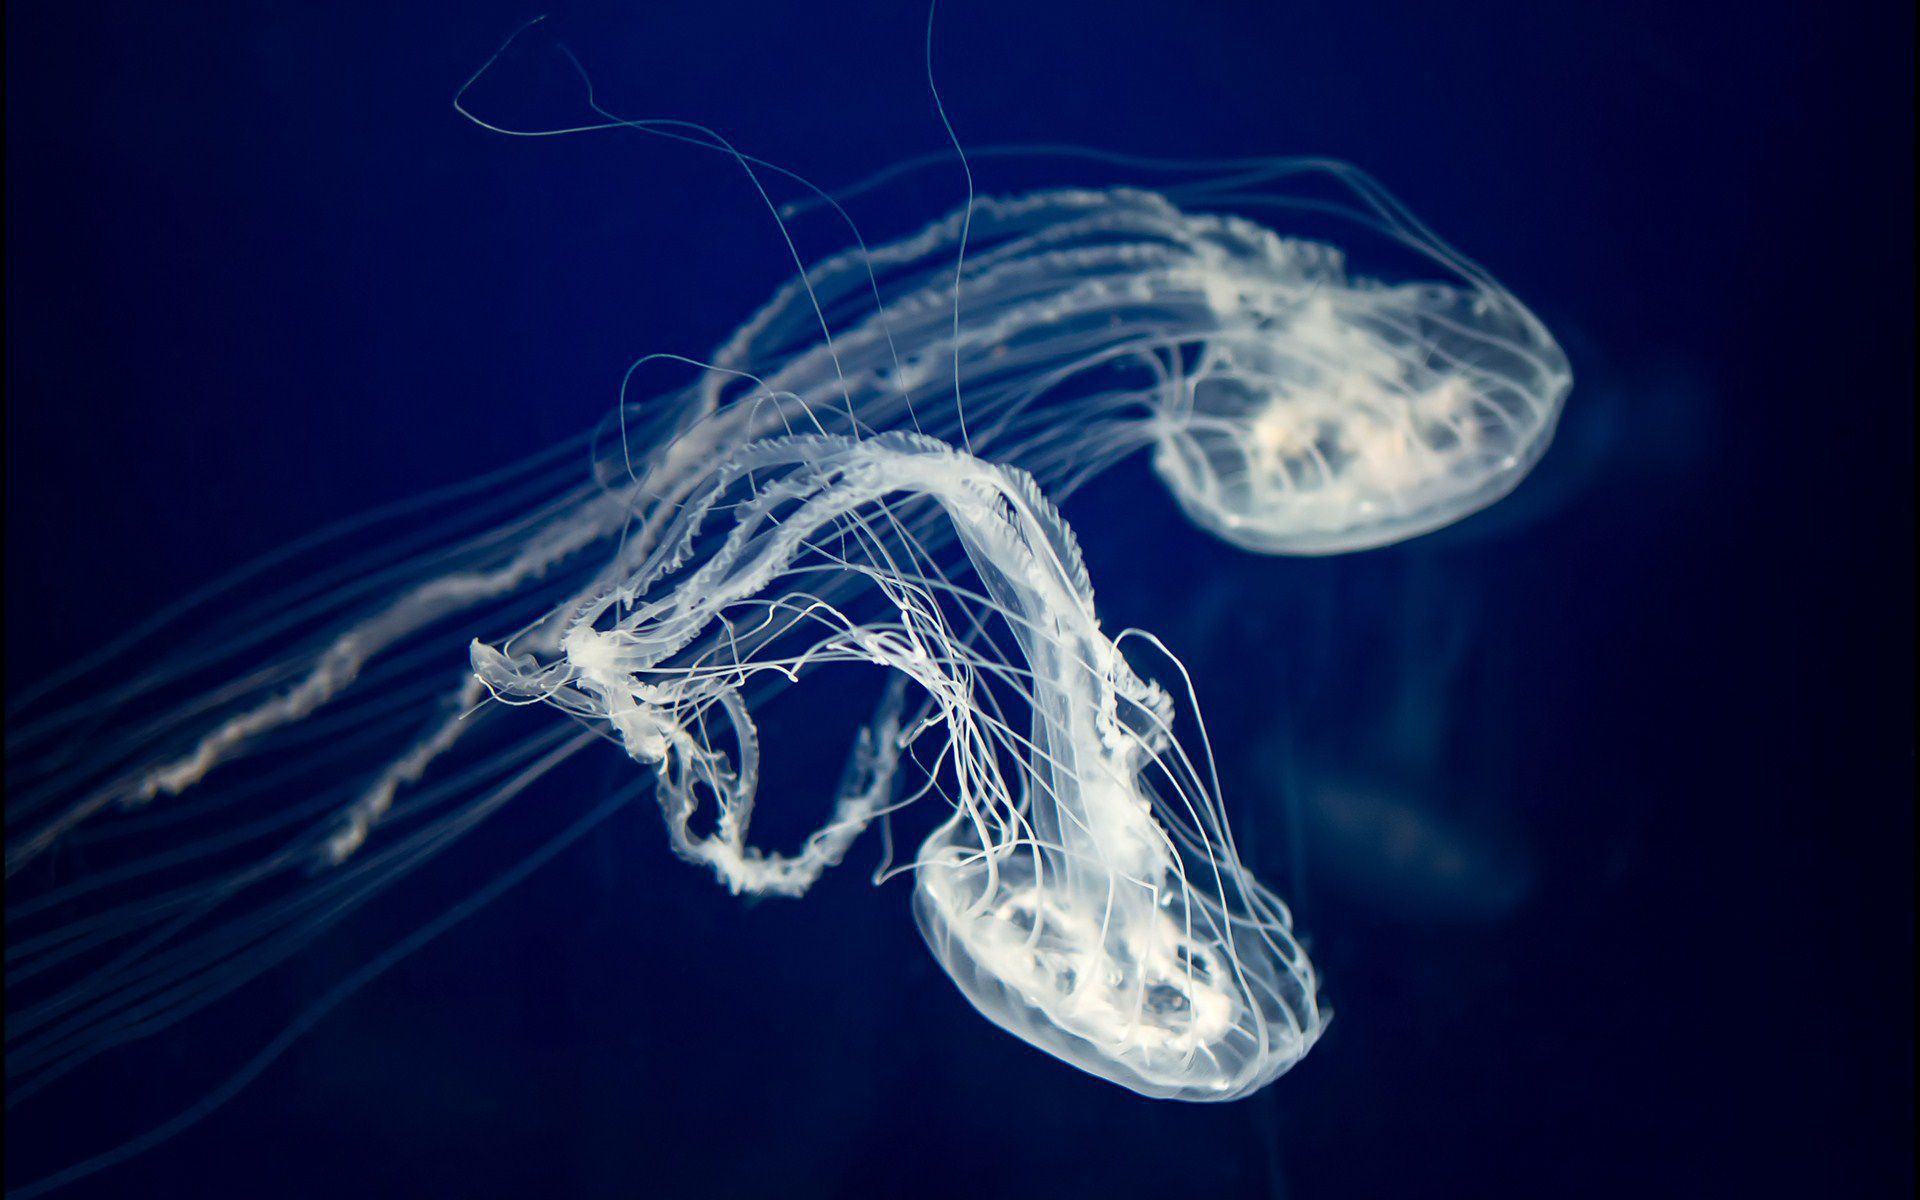 Box Jellyfish Wallpaper Pack